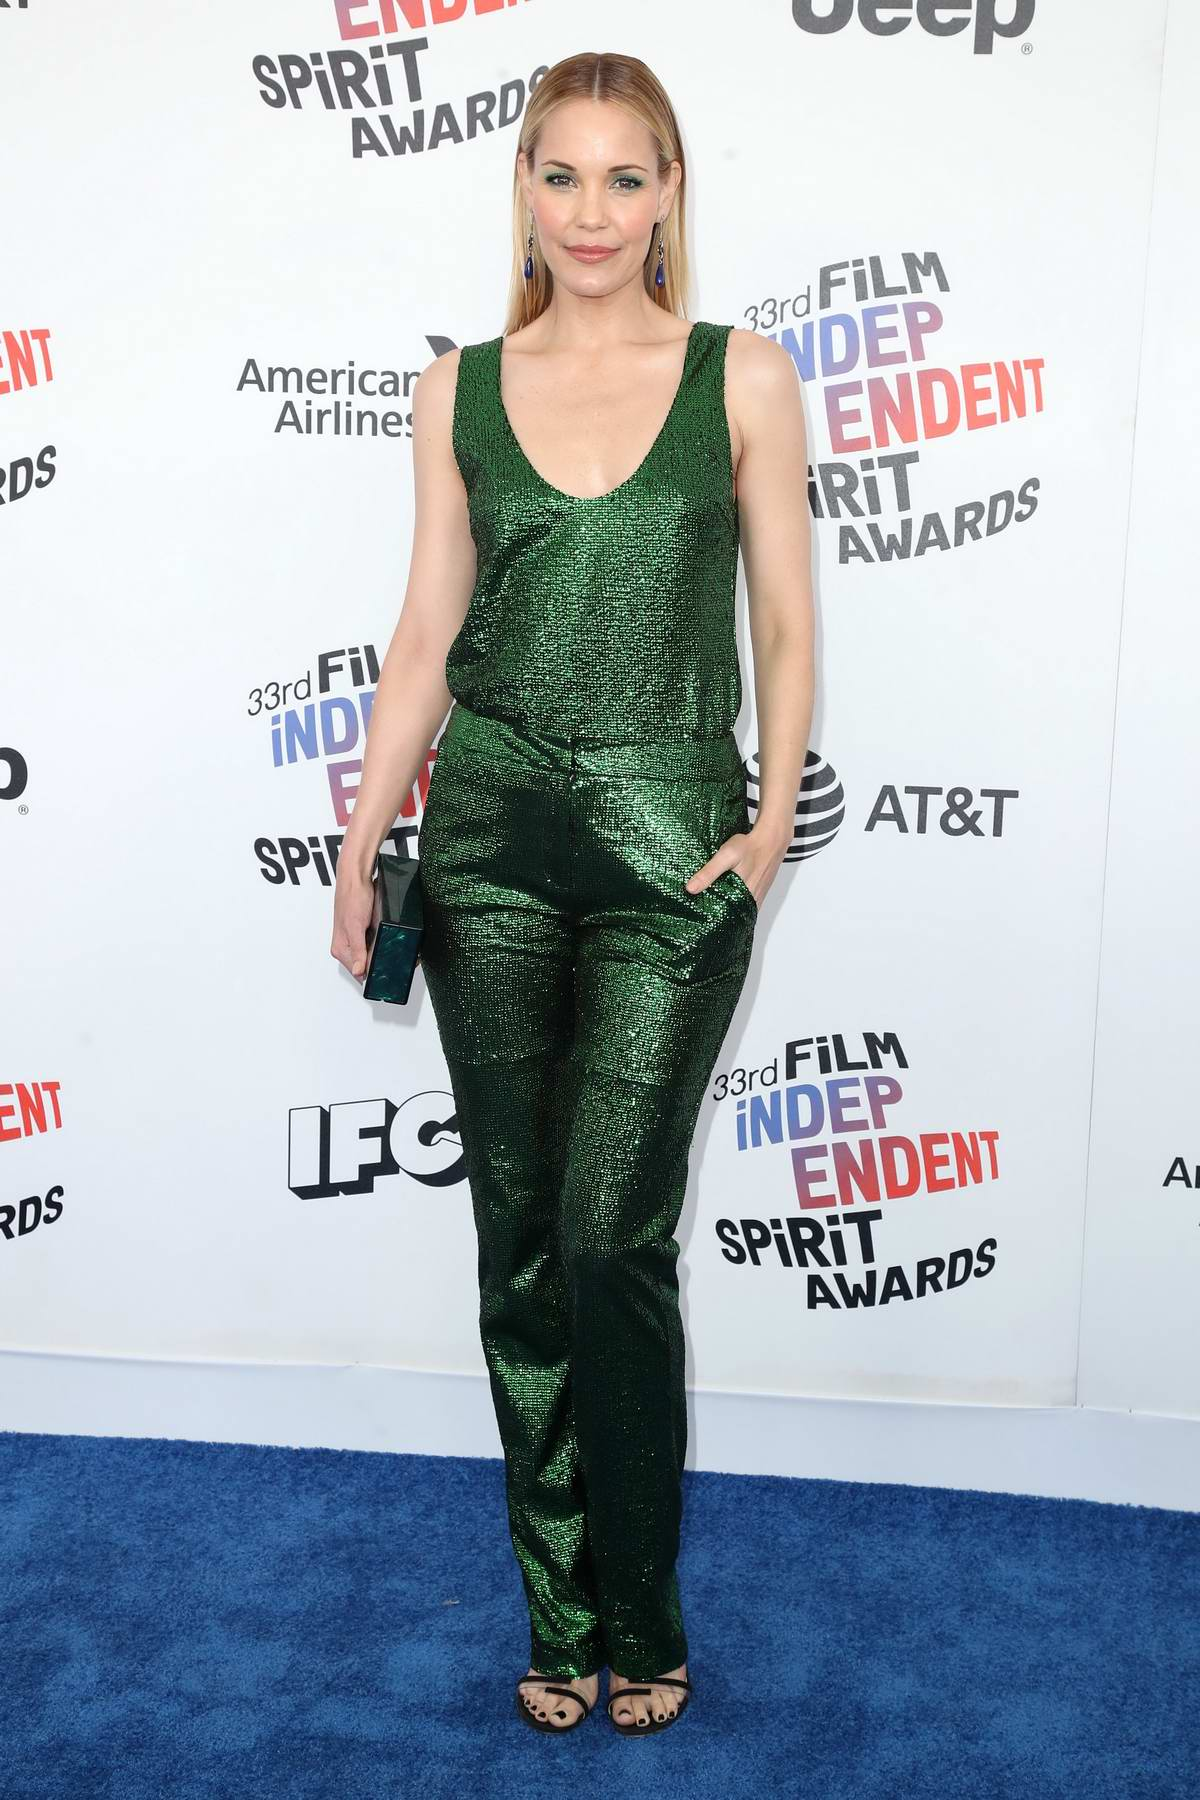 Leslie Bibb attends the 33rd Film Independent Spirit Awards in Los Angeles